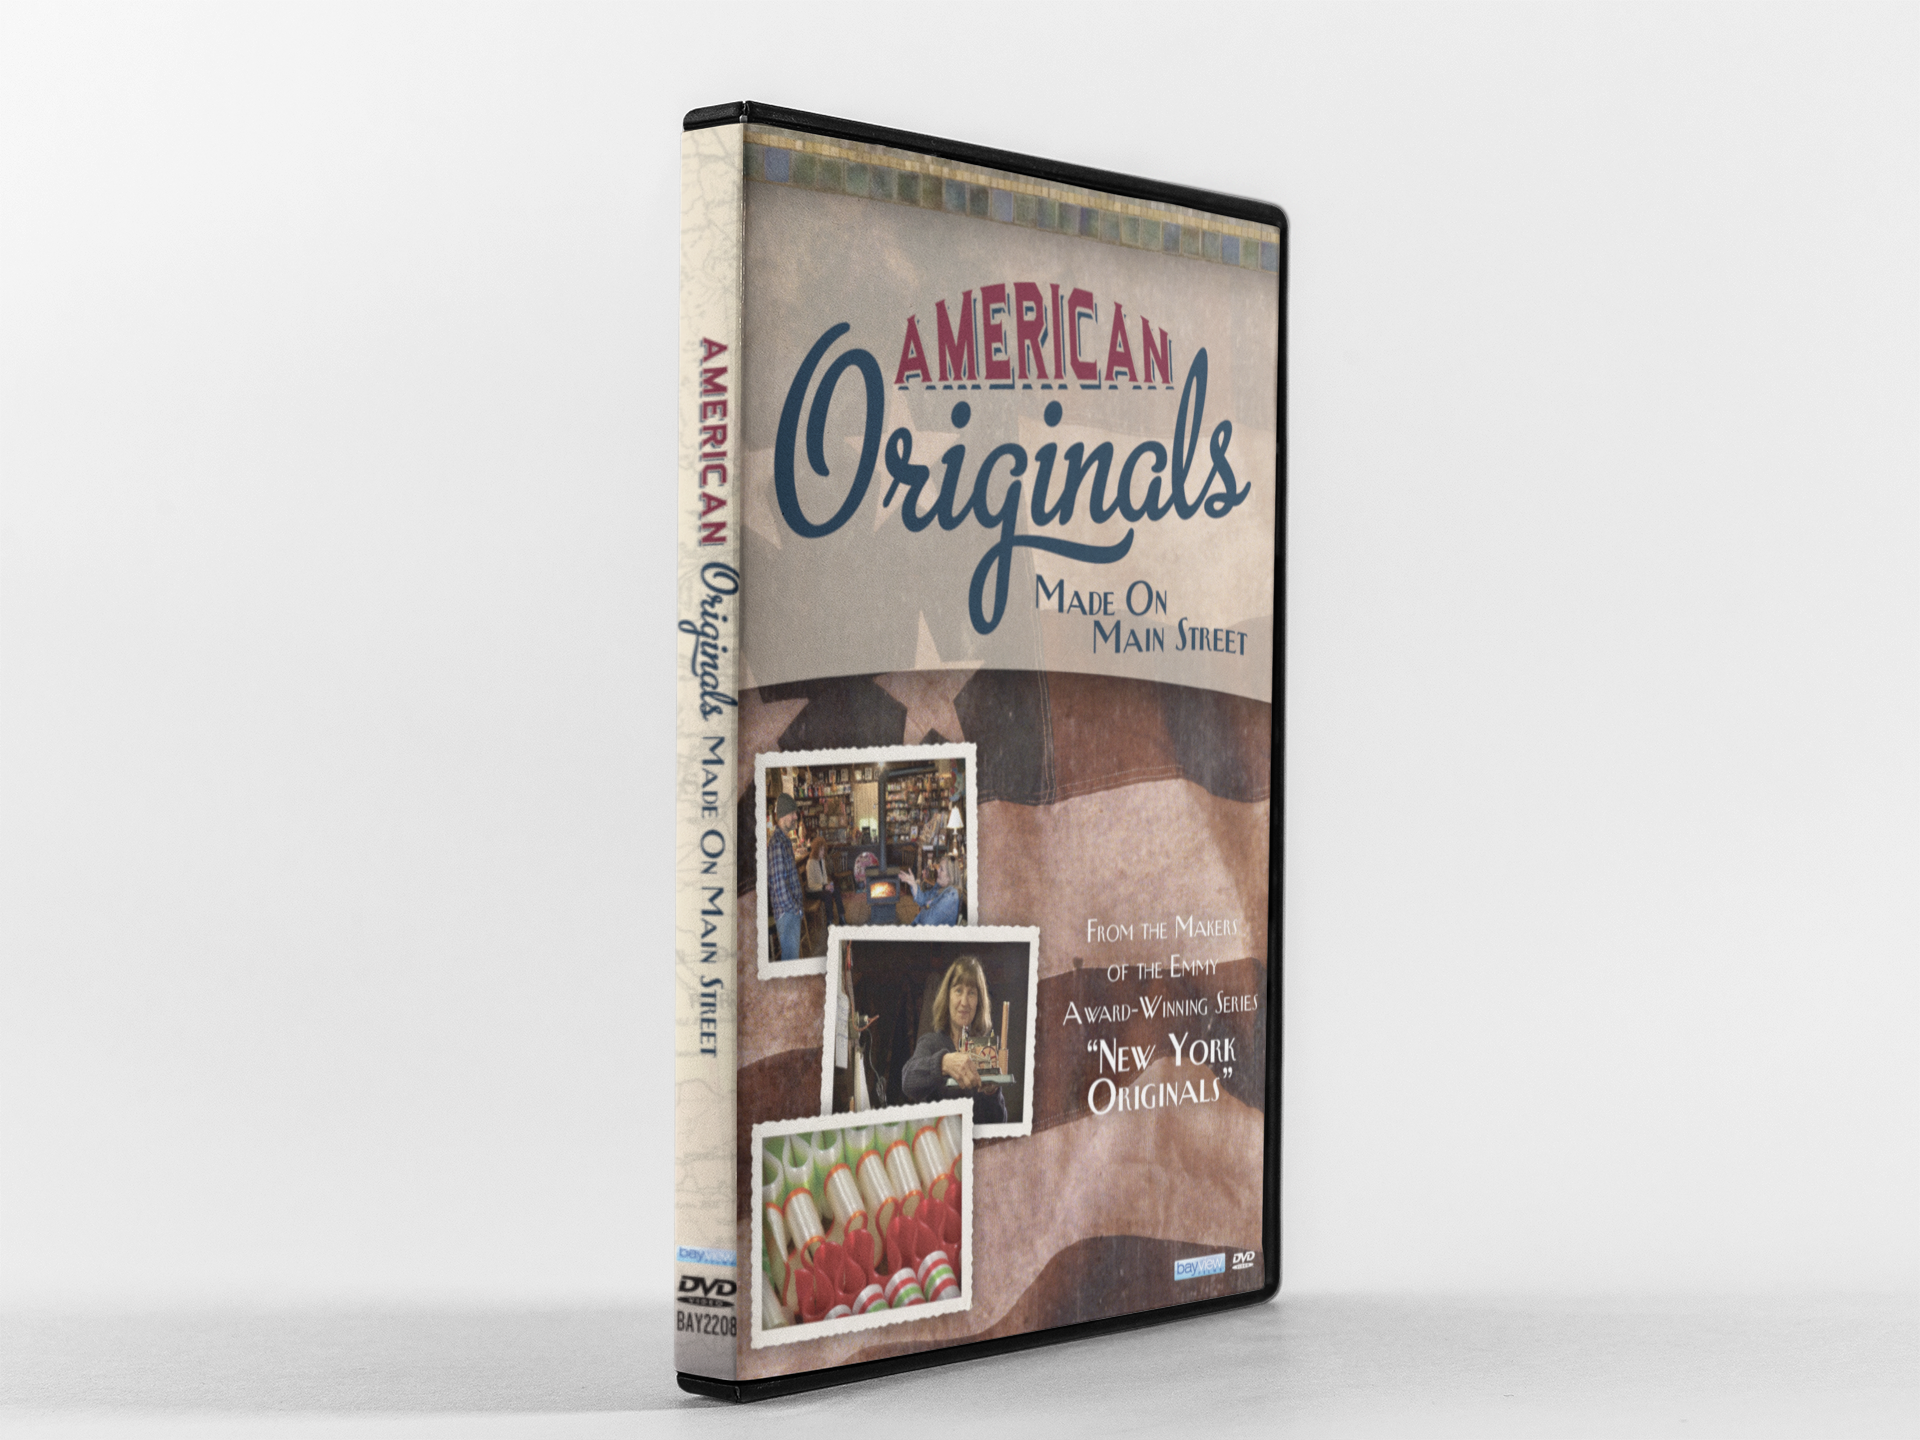 dvd-box-mockup-standing-against-a-solid-color-surface-a15205.png